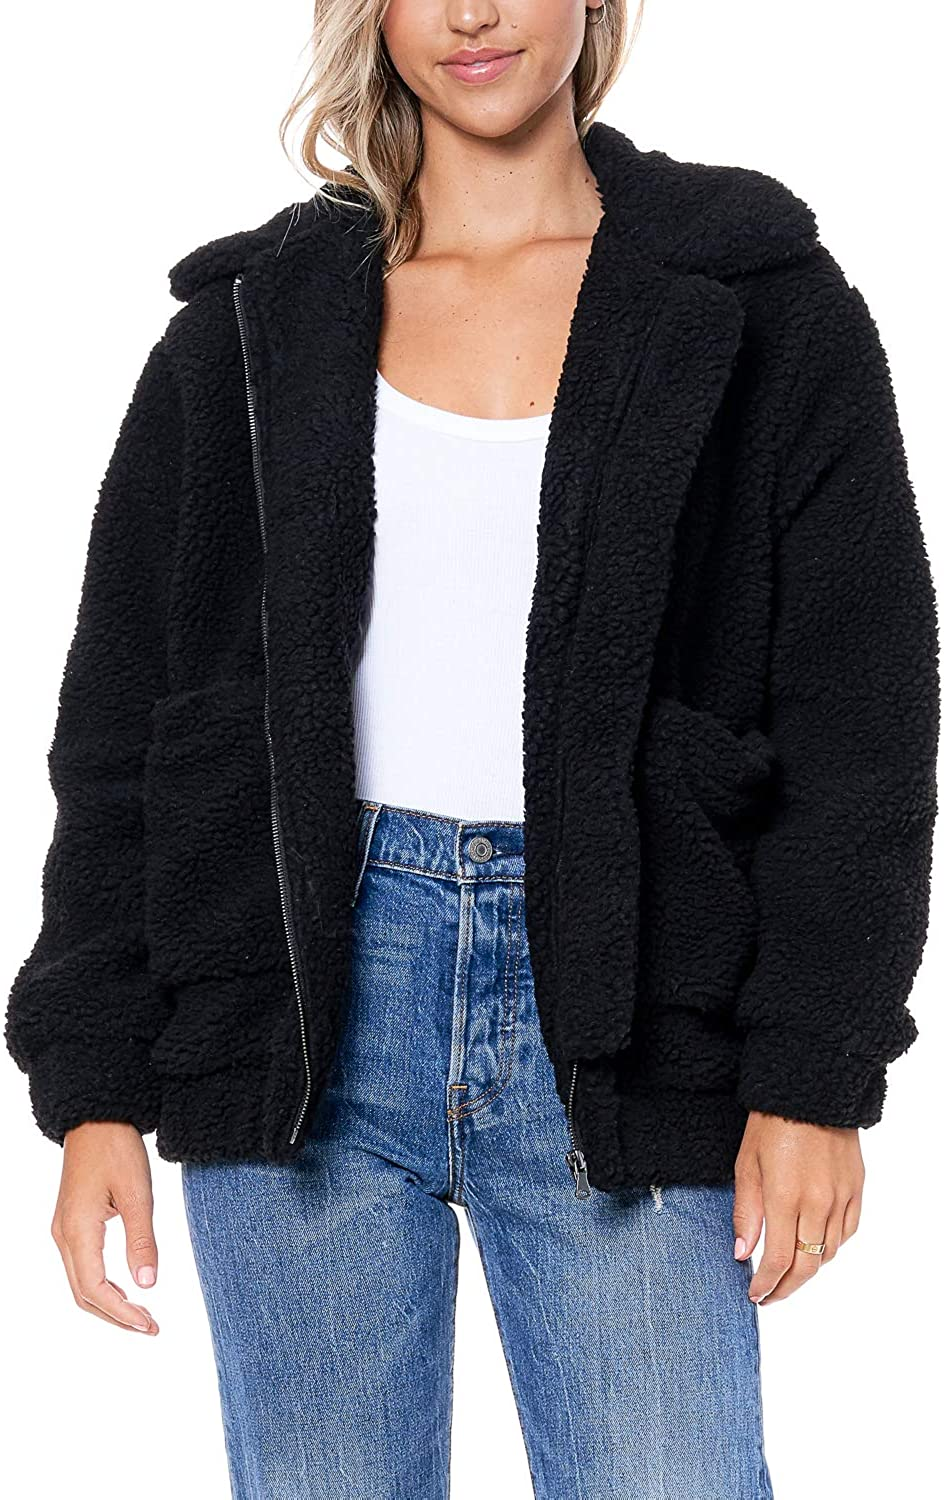 Directly managed store ELODIE Women's Fuzzy Faux Bear Shearling Free shipping on posting reviews Jacket Teddy